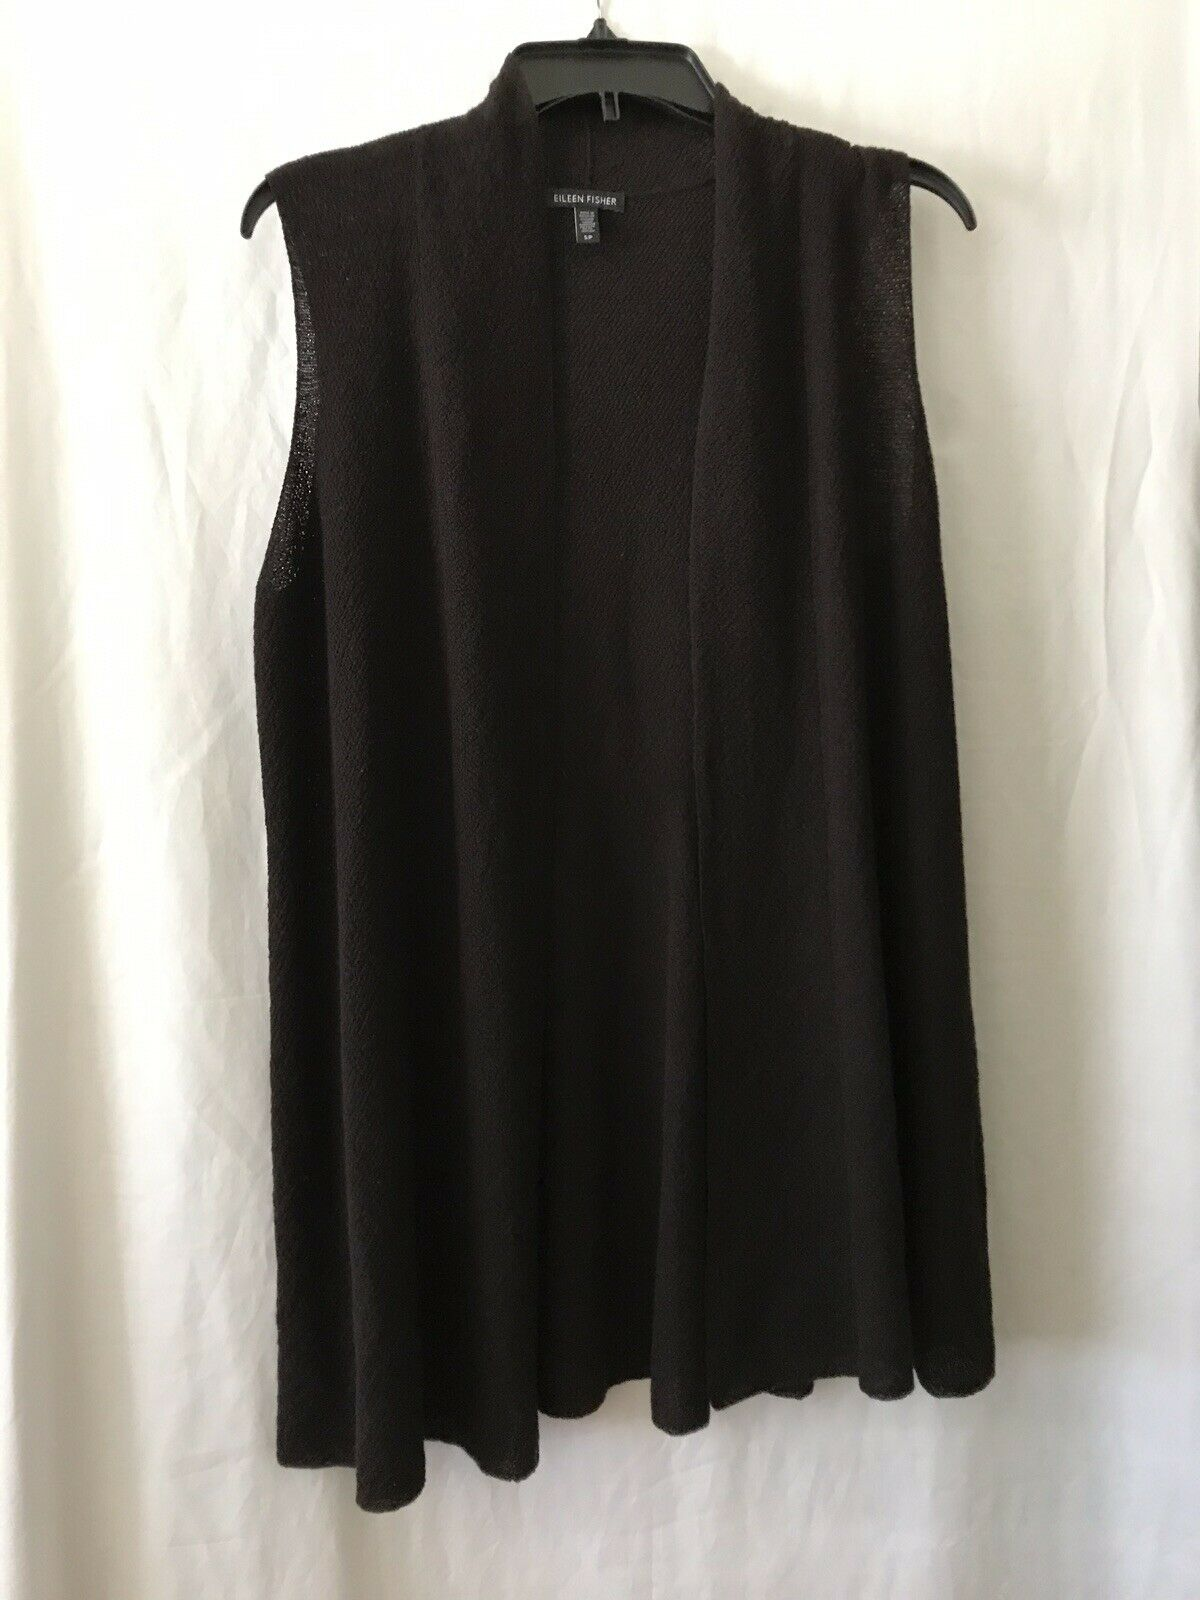 EILEEN FISHER Brown Knit Wool Vest Sz S